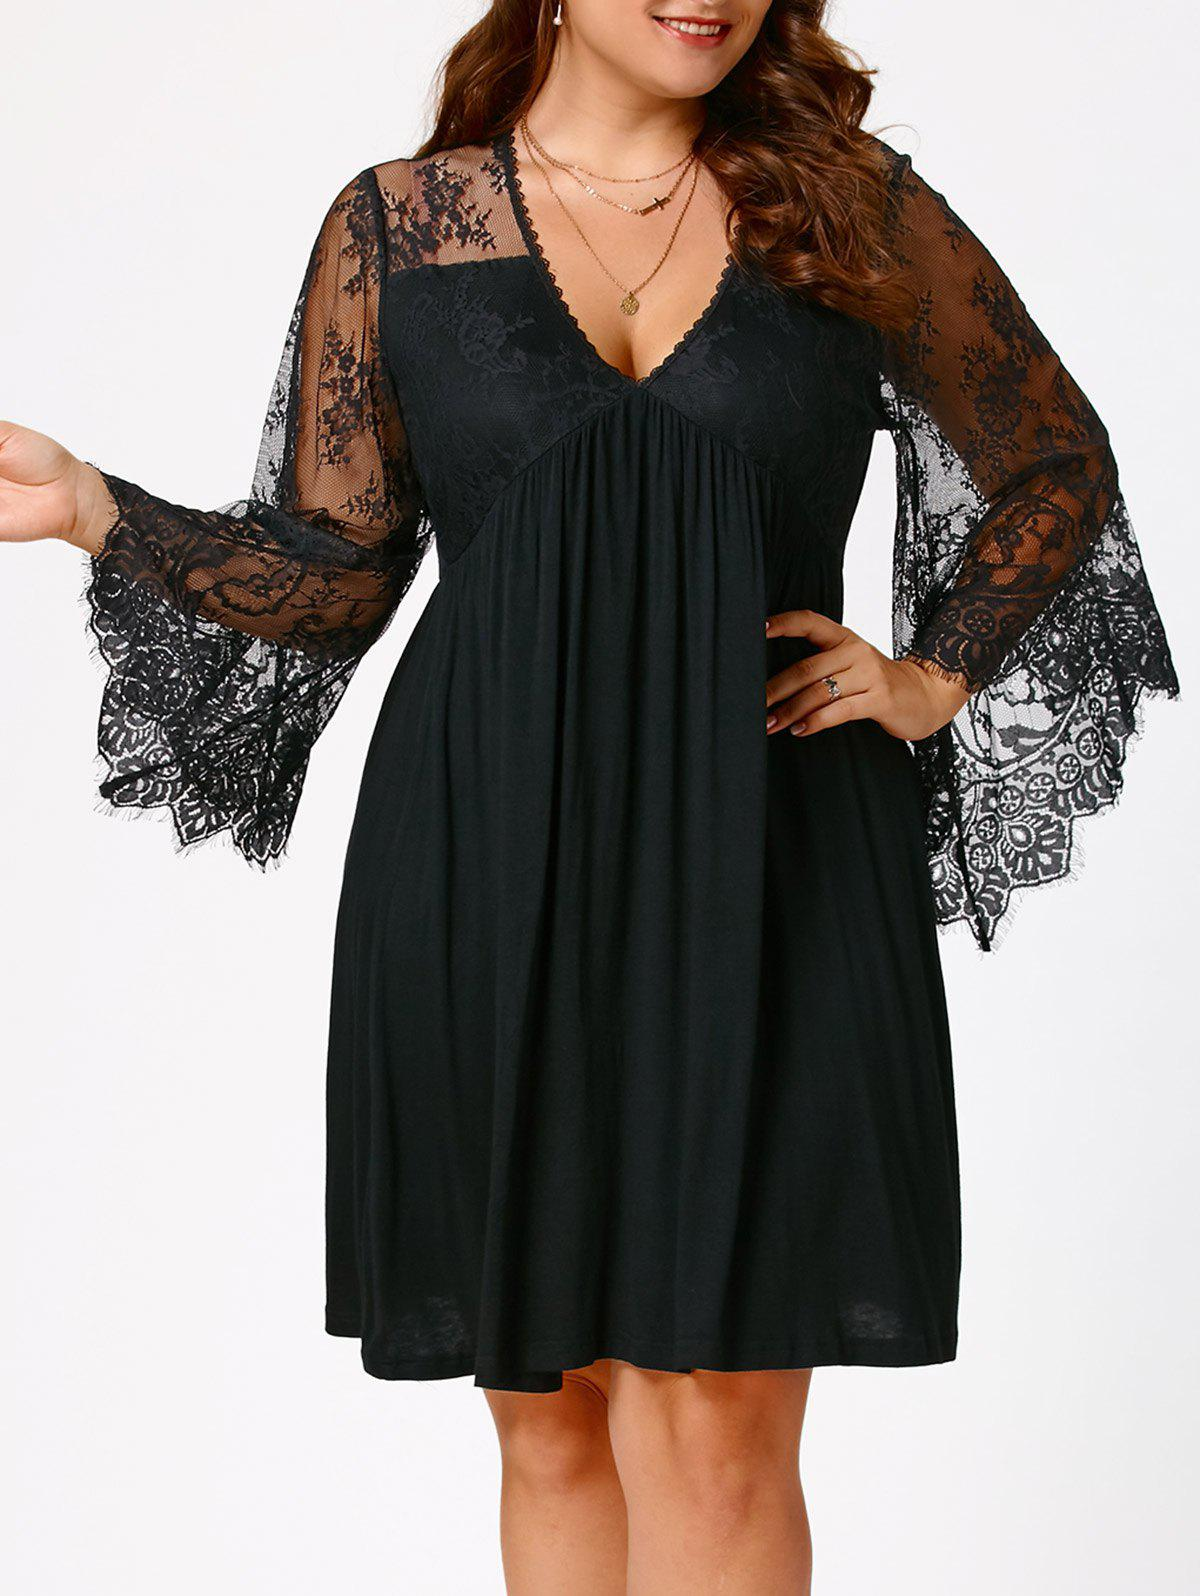 Plus Size Lace Sleeve Holiday DressWOMEN<br><br>Size: 3XL; Color: BLACK; Style: Brief; Material: Polyester,Spandex; Silhouette: A-Line; Dresses Length: Knee-Length; Neckline: V-Neck; Sleeve Type: Flare Sleeve; Sleeve Length: Long Sleeves; Waist: Empire; Embellishment: Lace,Panel; Pattern Type: Solid Color; Elasticity: Elastic; With Belt: No; Season: Fall,Spring,Summer; Weight: 0.3500kg; Package Contents: 1 x Dress;